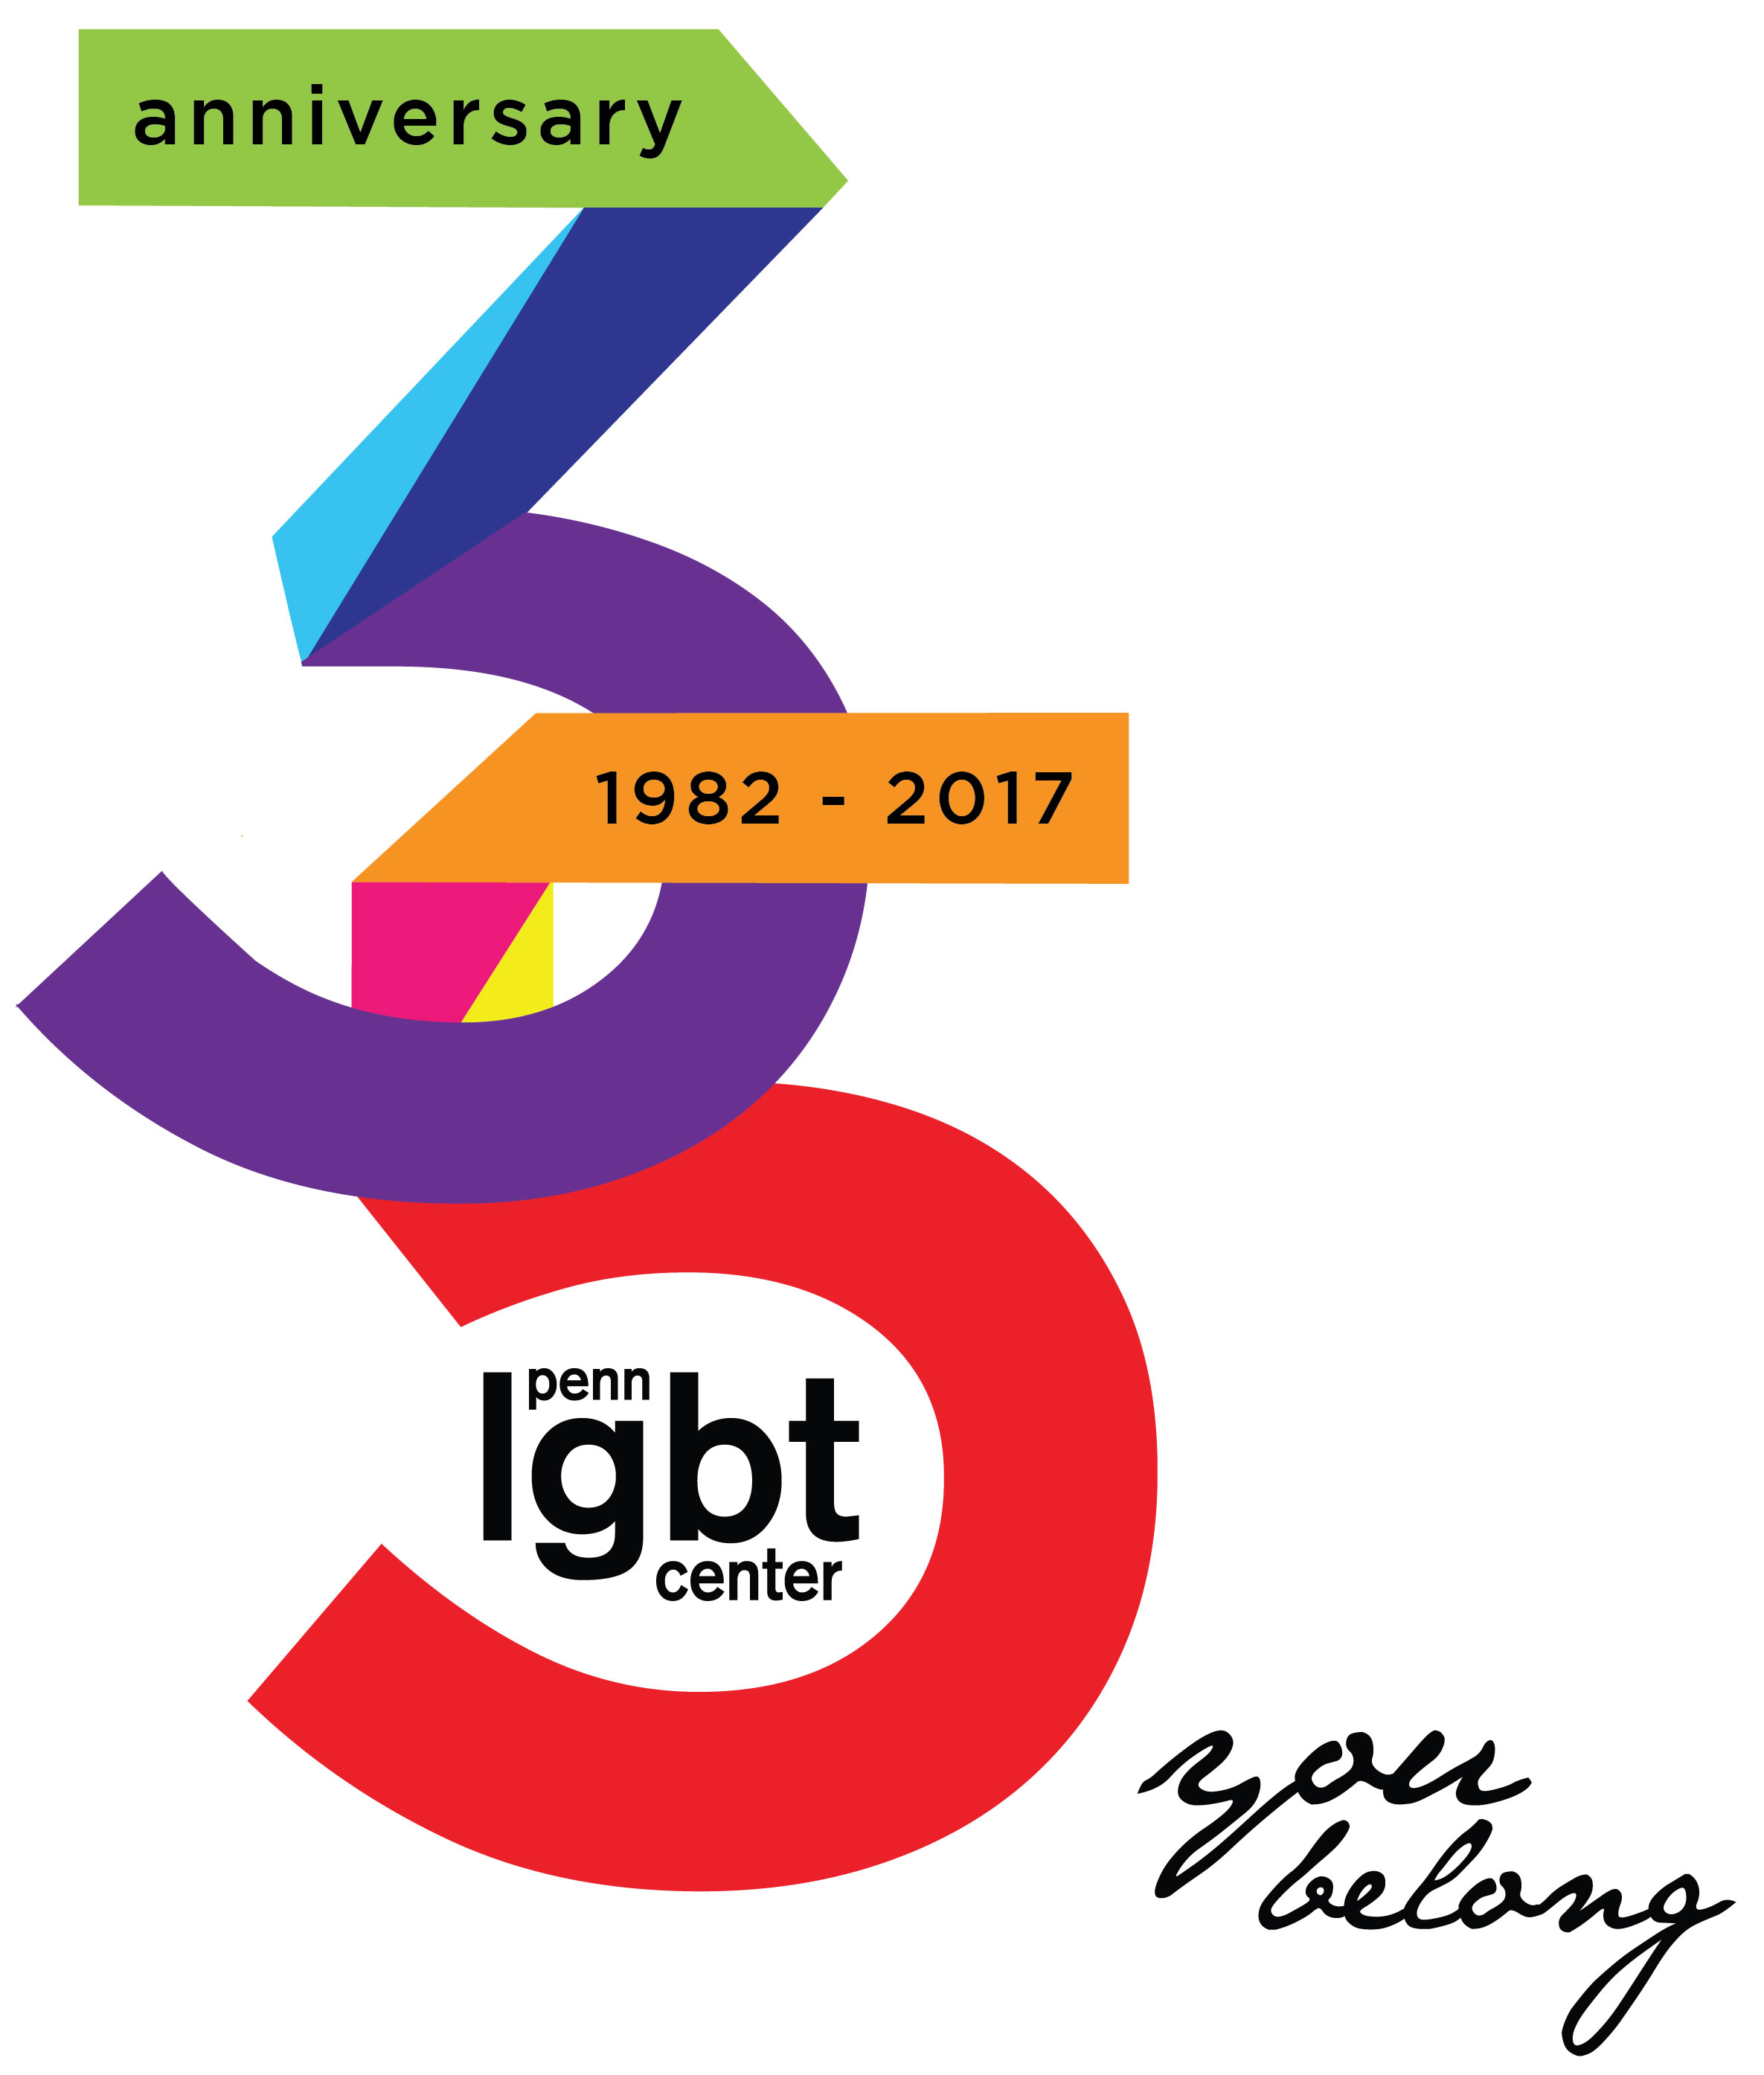 LGBT Center's 35th Anniversary Festivities